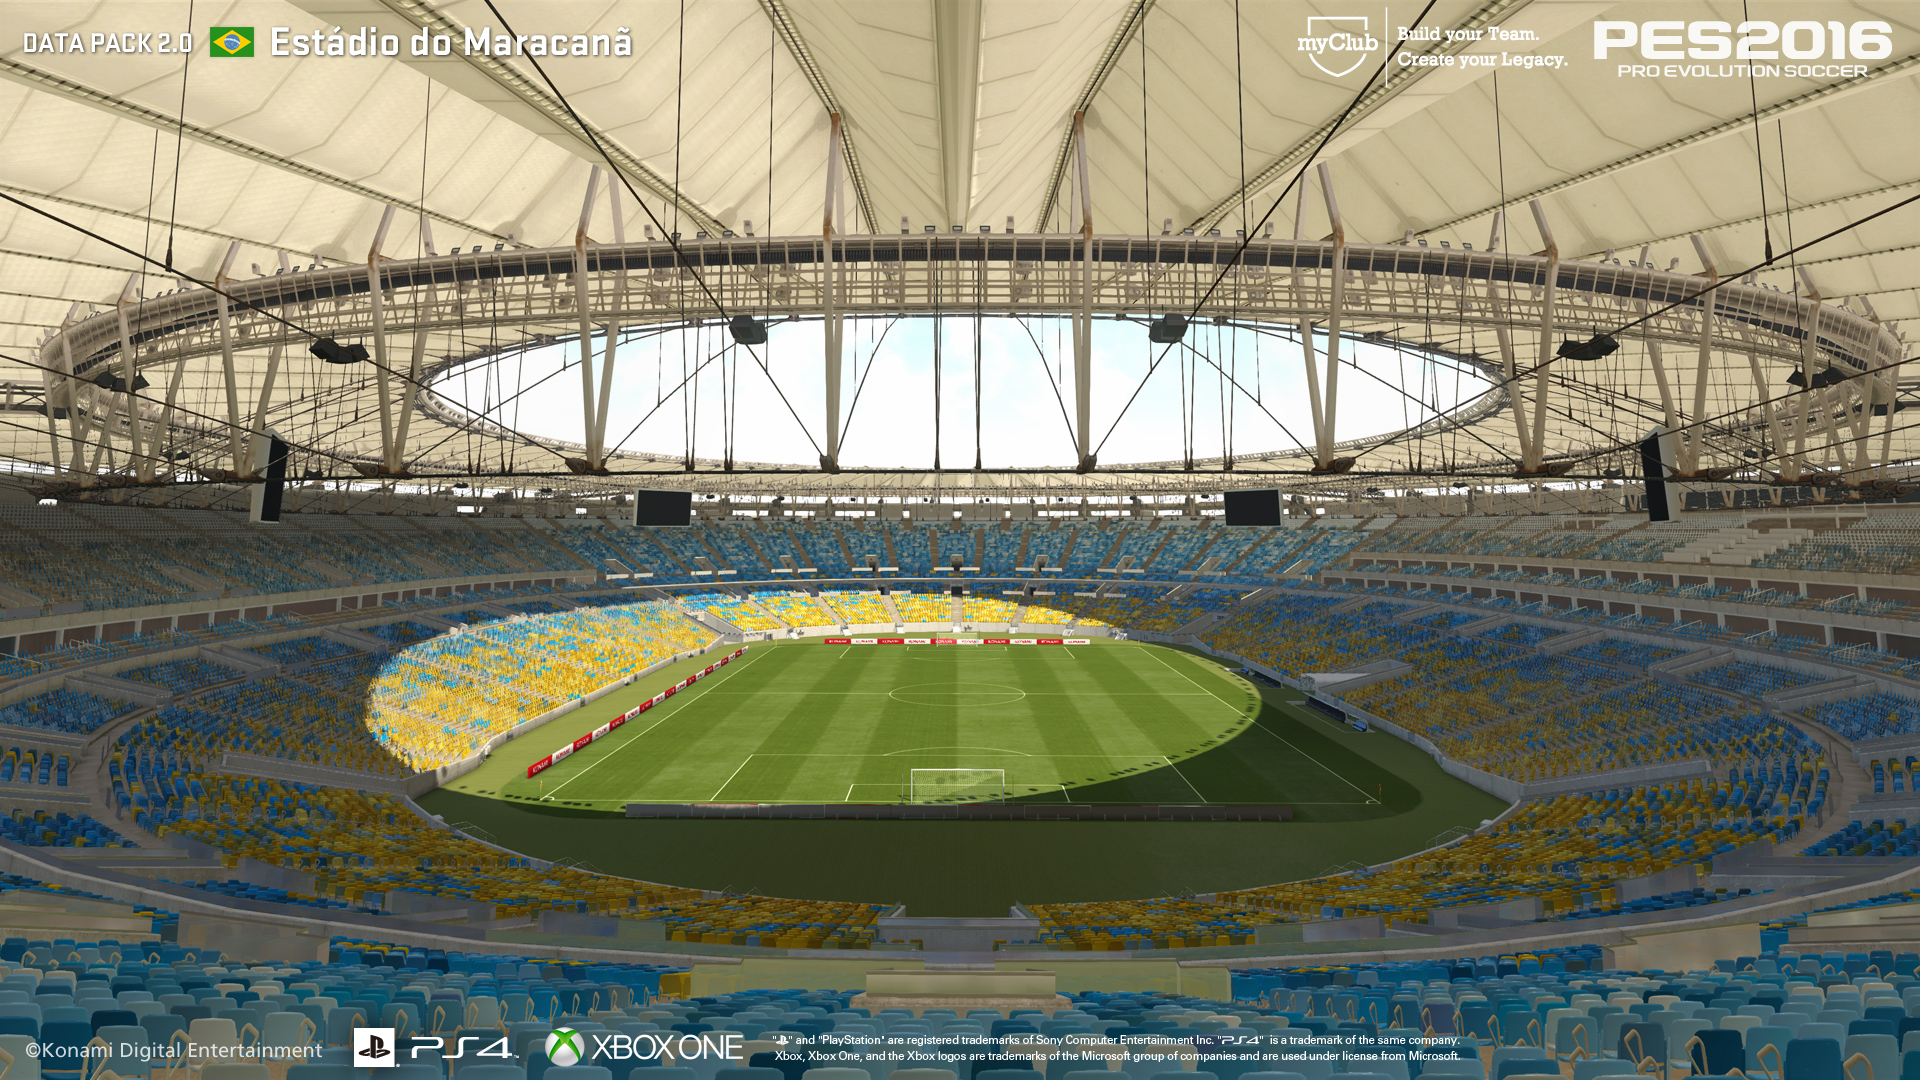 PES 2016 DP2 Estadio do Maracana_3